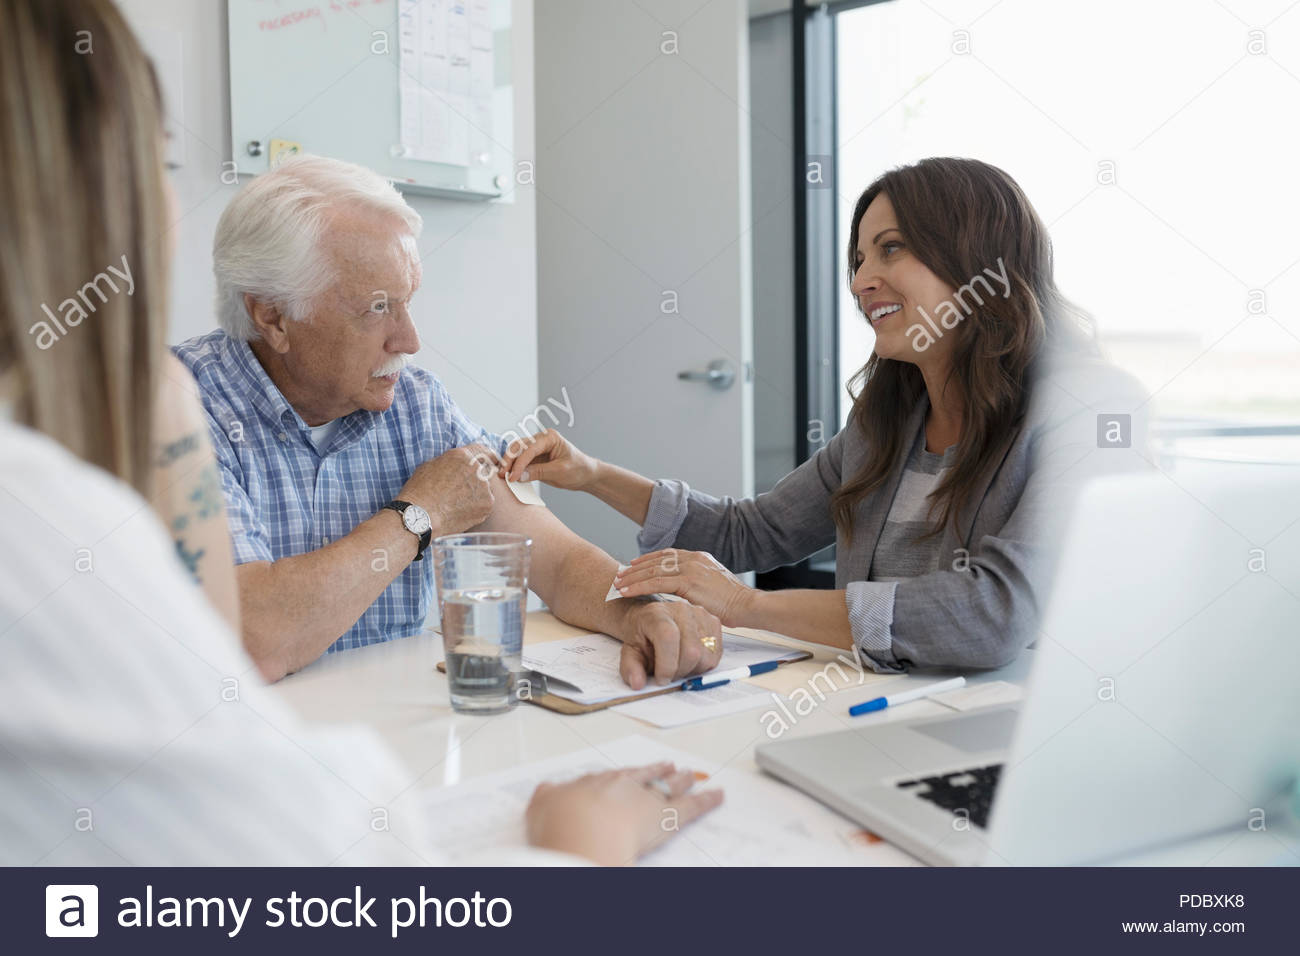 Female doctor applying smoking patch to arm of senior male patient in clinic office Stock Photo